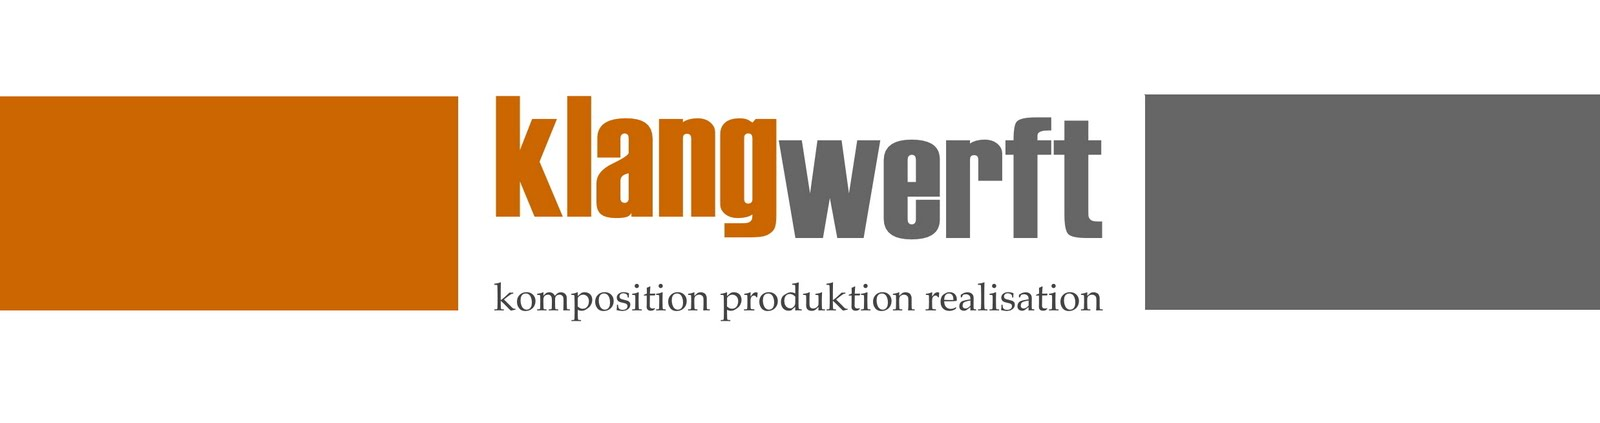 klangwerft komposition arrangement produktion